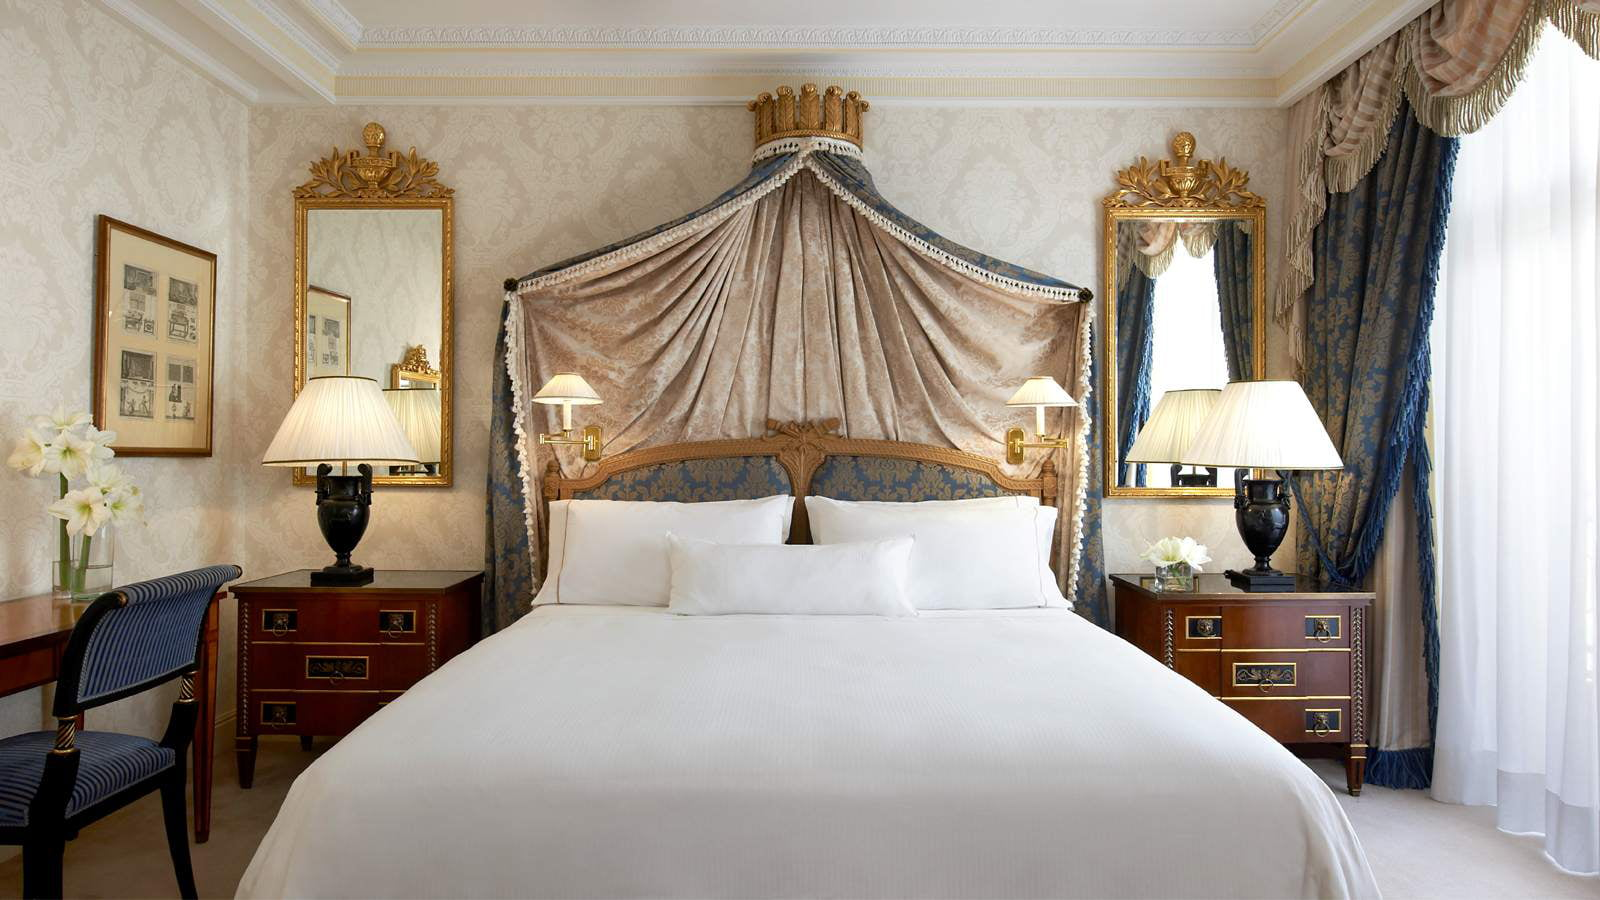 Suite real en hotel westin palace - Hotel the westin palace madrid ...